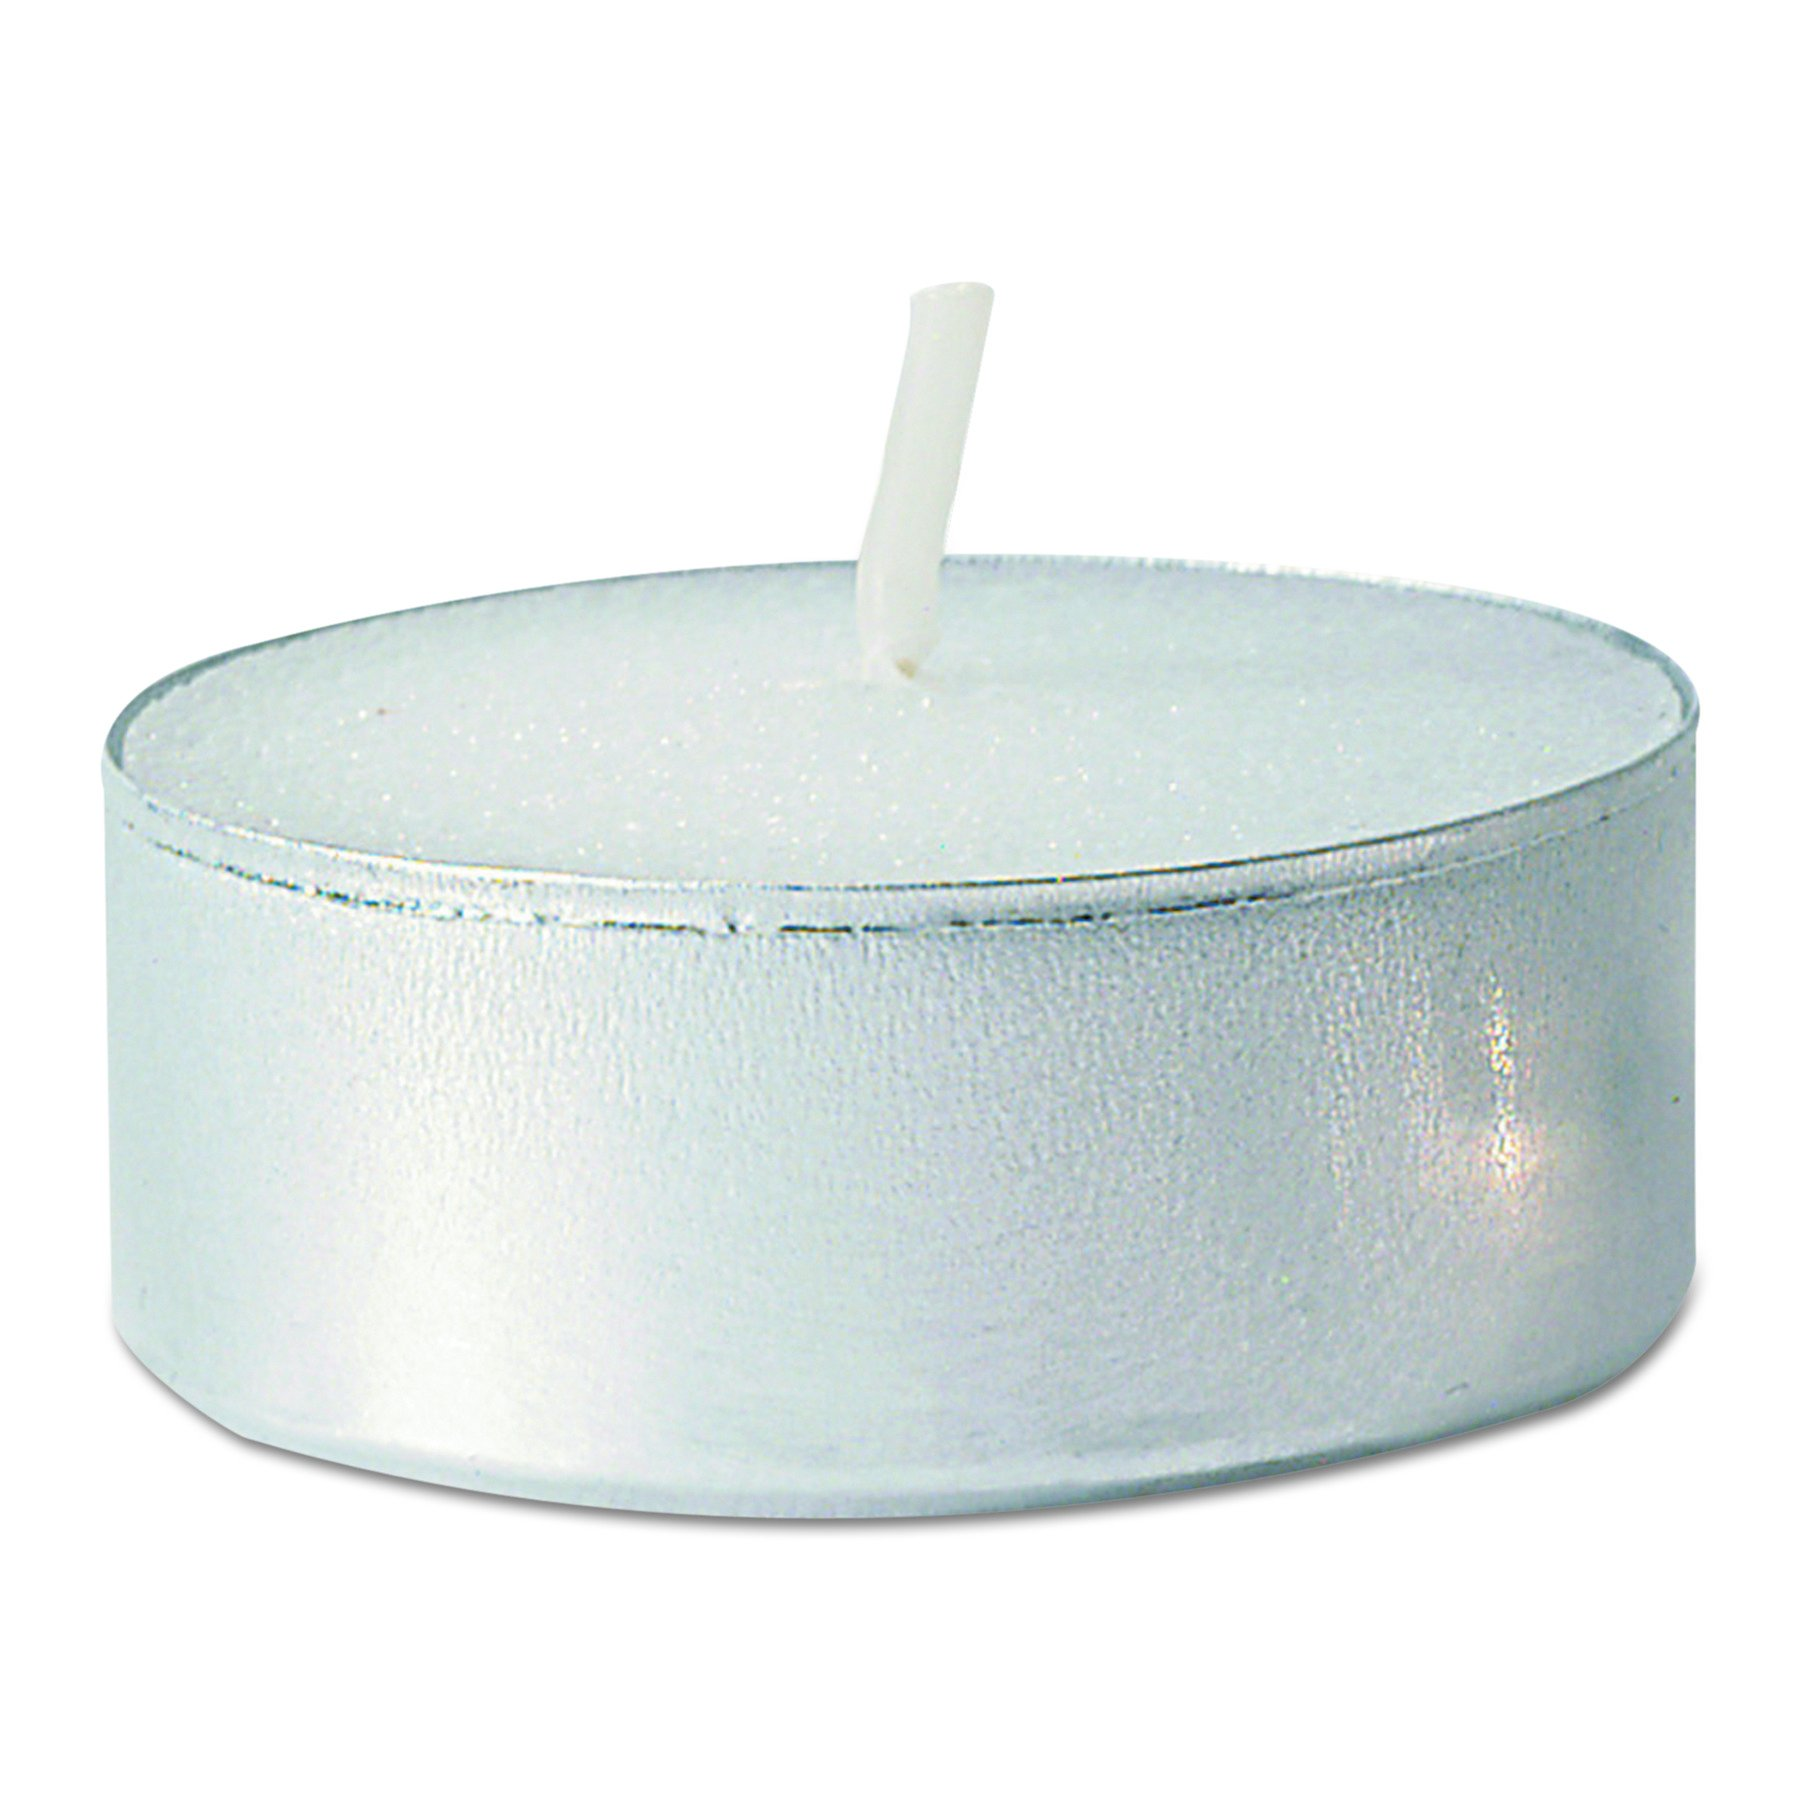 FancyHeat F410 Tealight Candle, 5 Hour Burn, White (Case of 500)